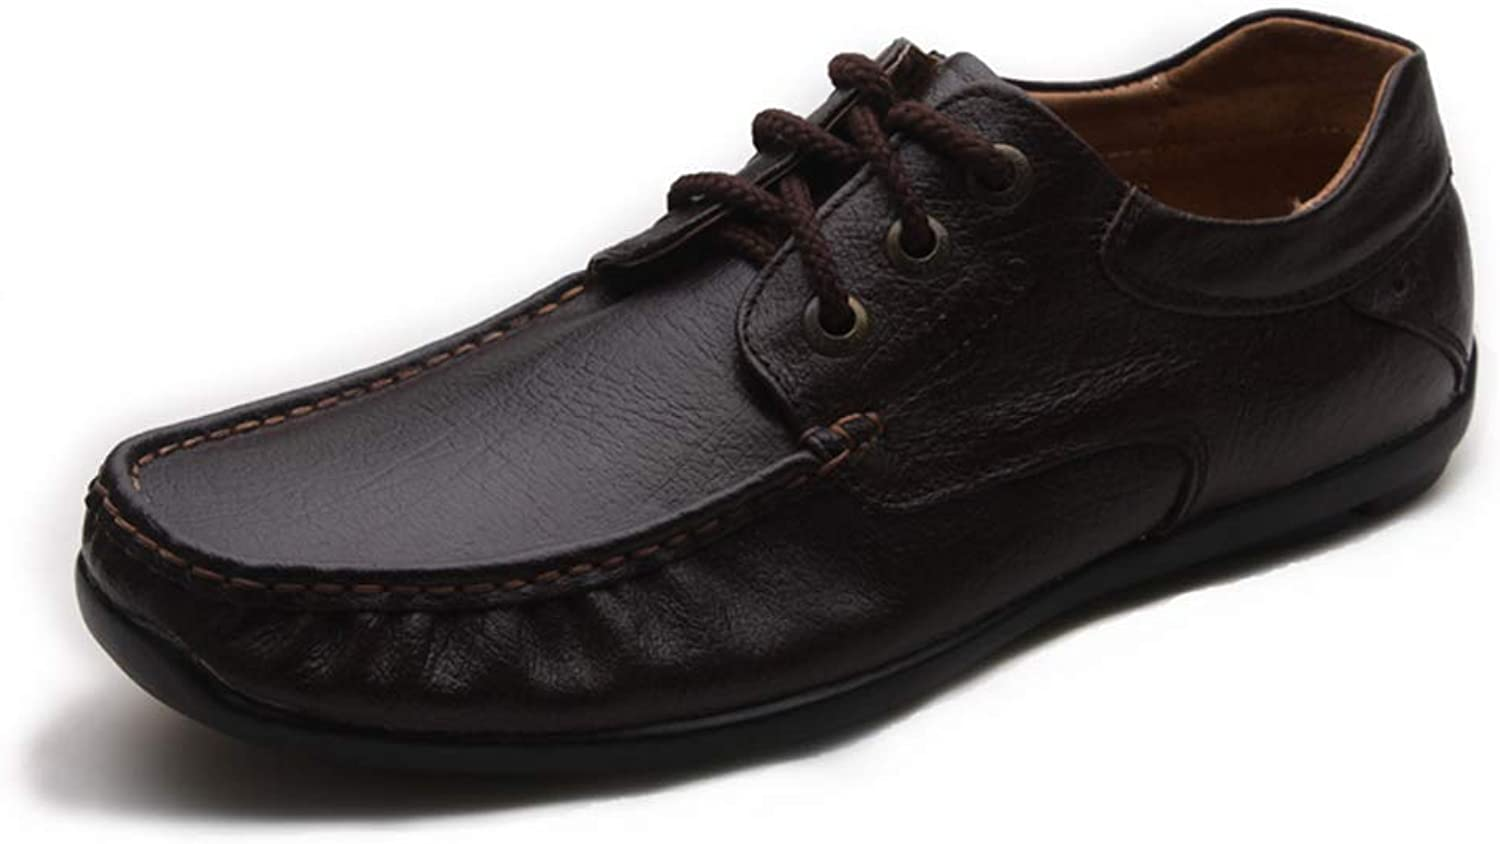 Men's Casual Leather shoes, Suede Leather, Rubber Non-Slip Outsole, Soft and Comfortable Laces (color   Brown, Size   42)